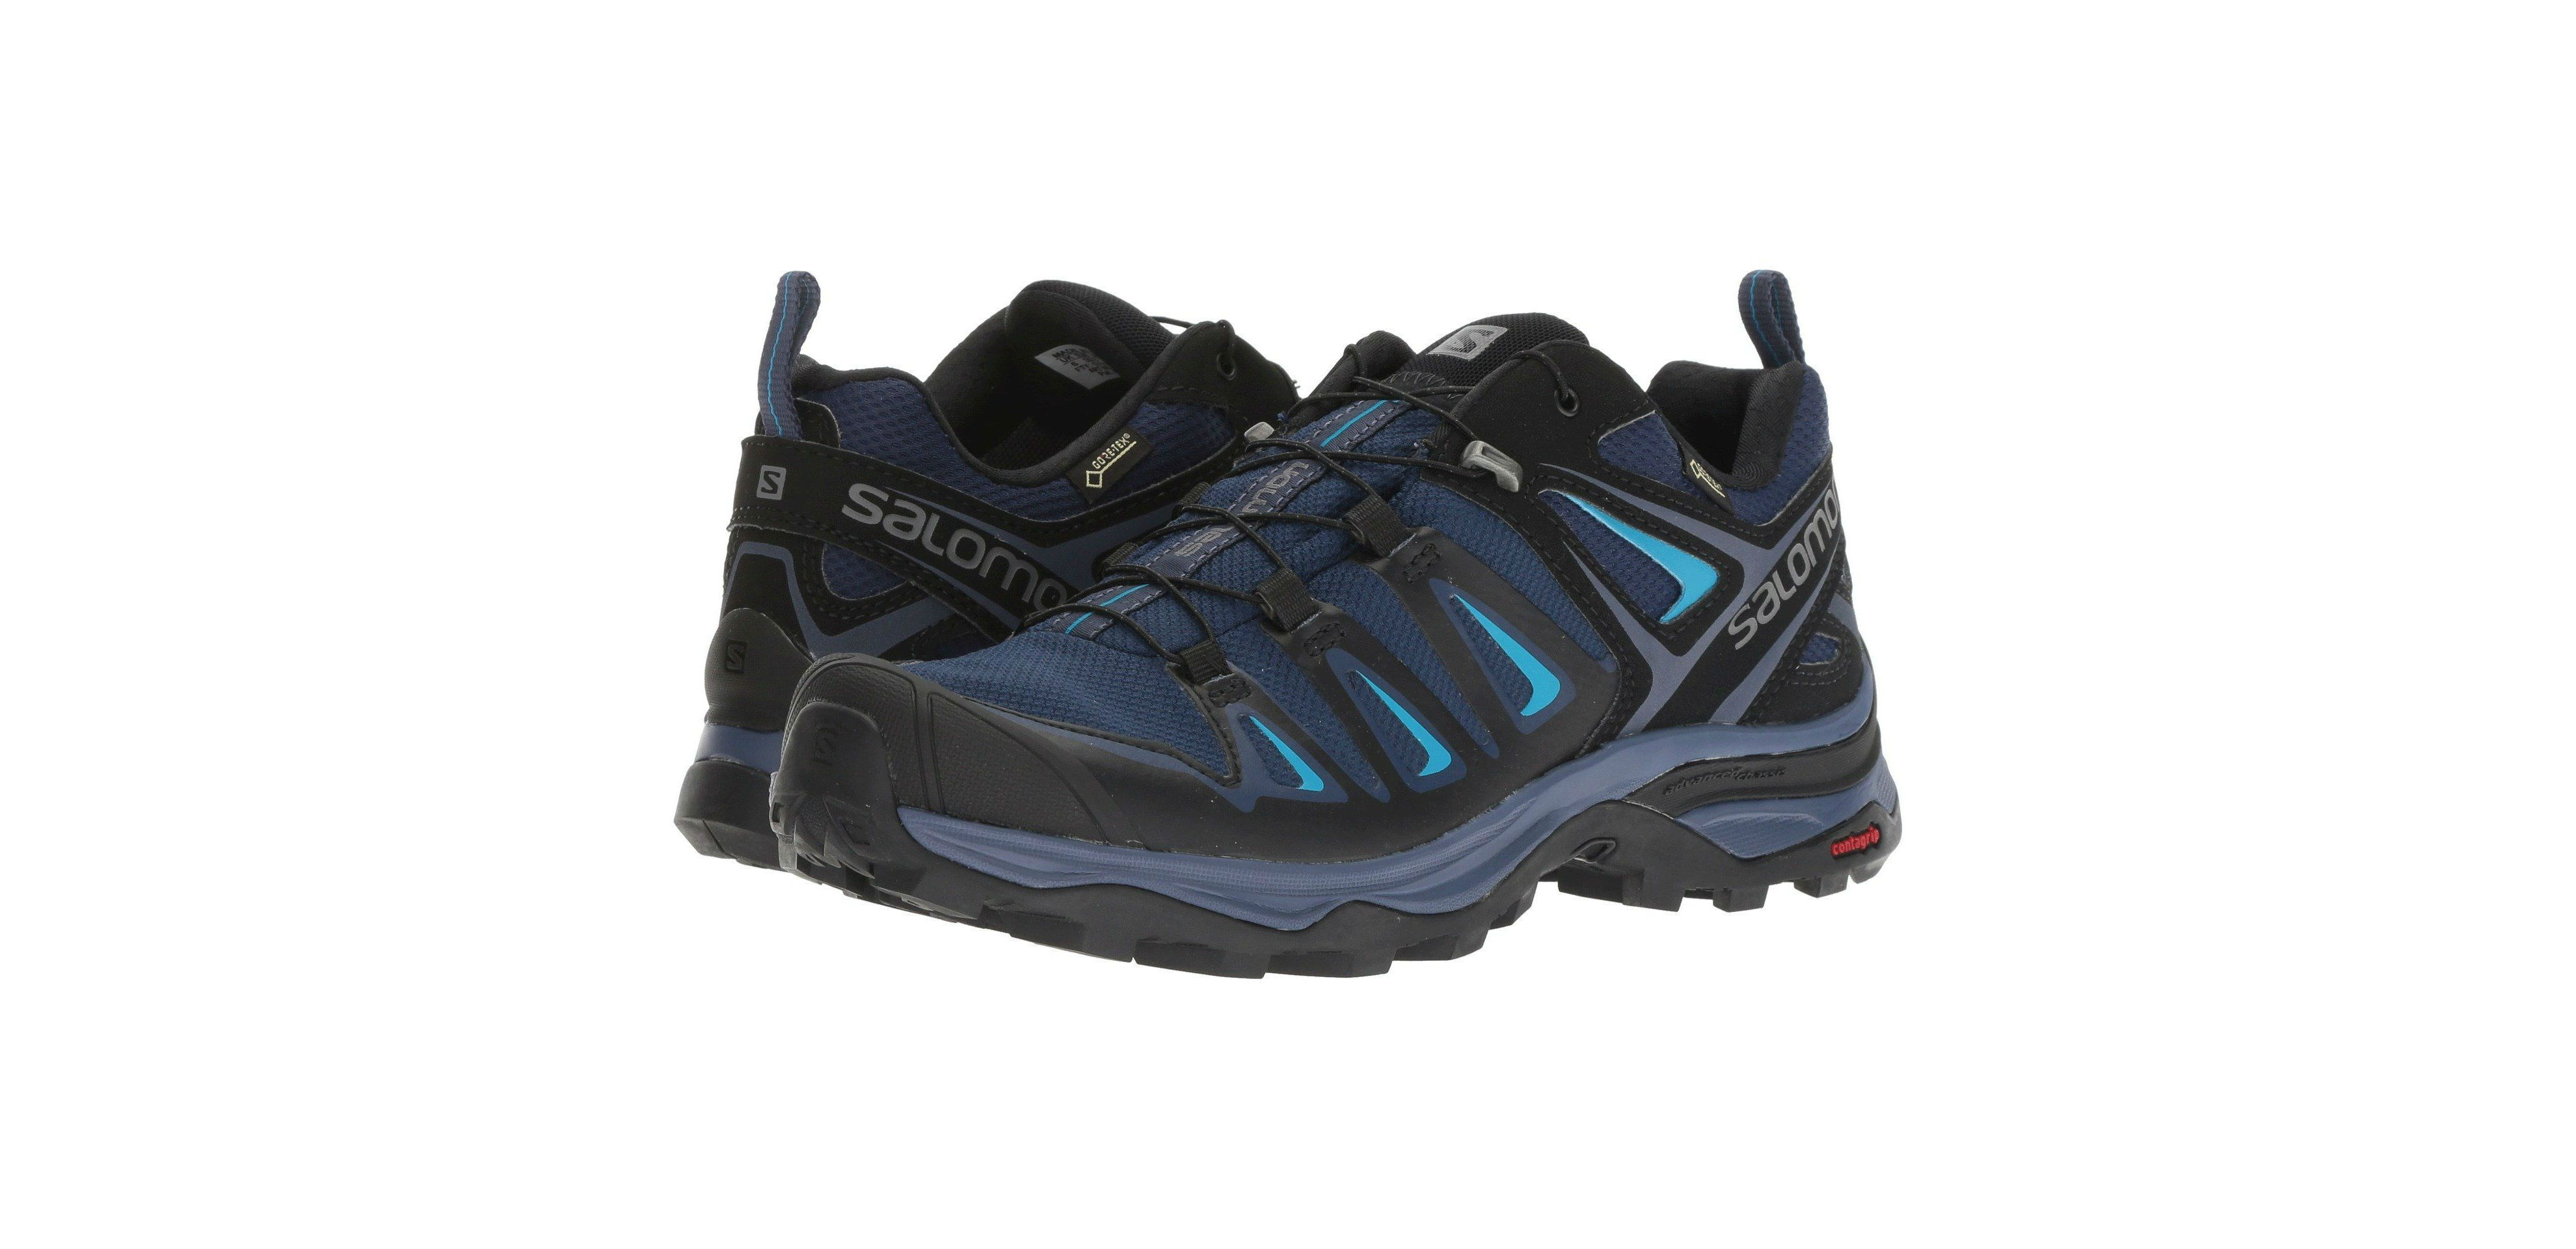 539352a9414f Best Hiking Boots 2019